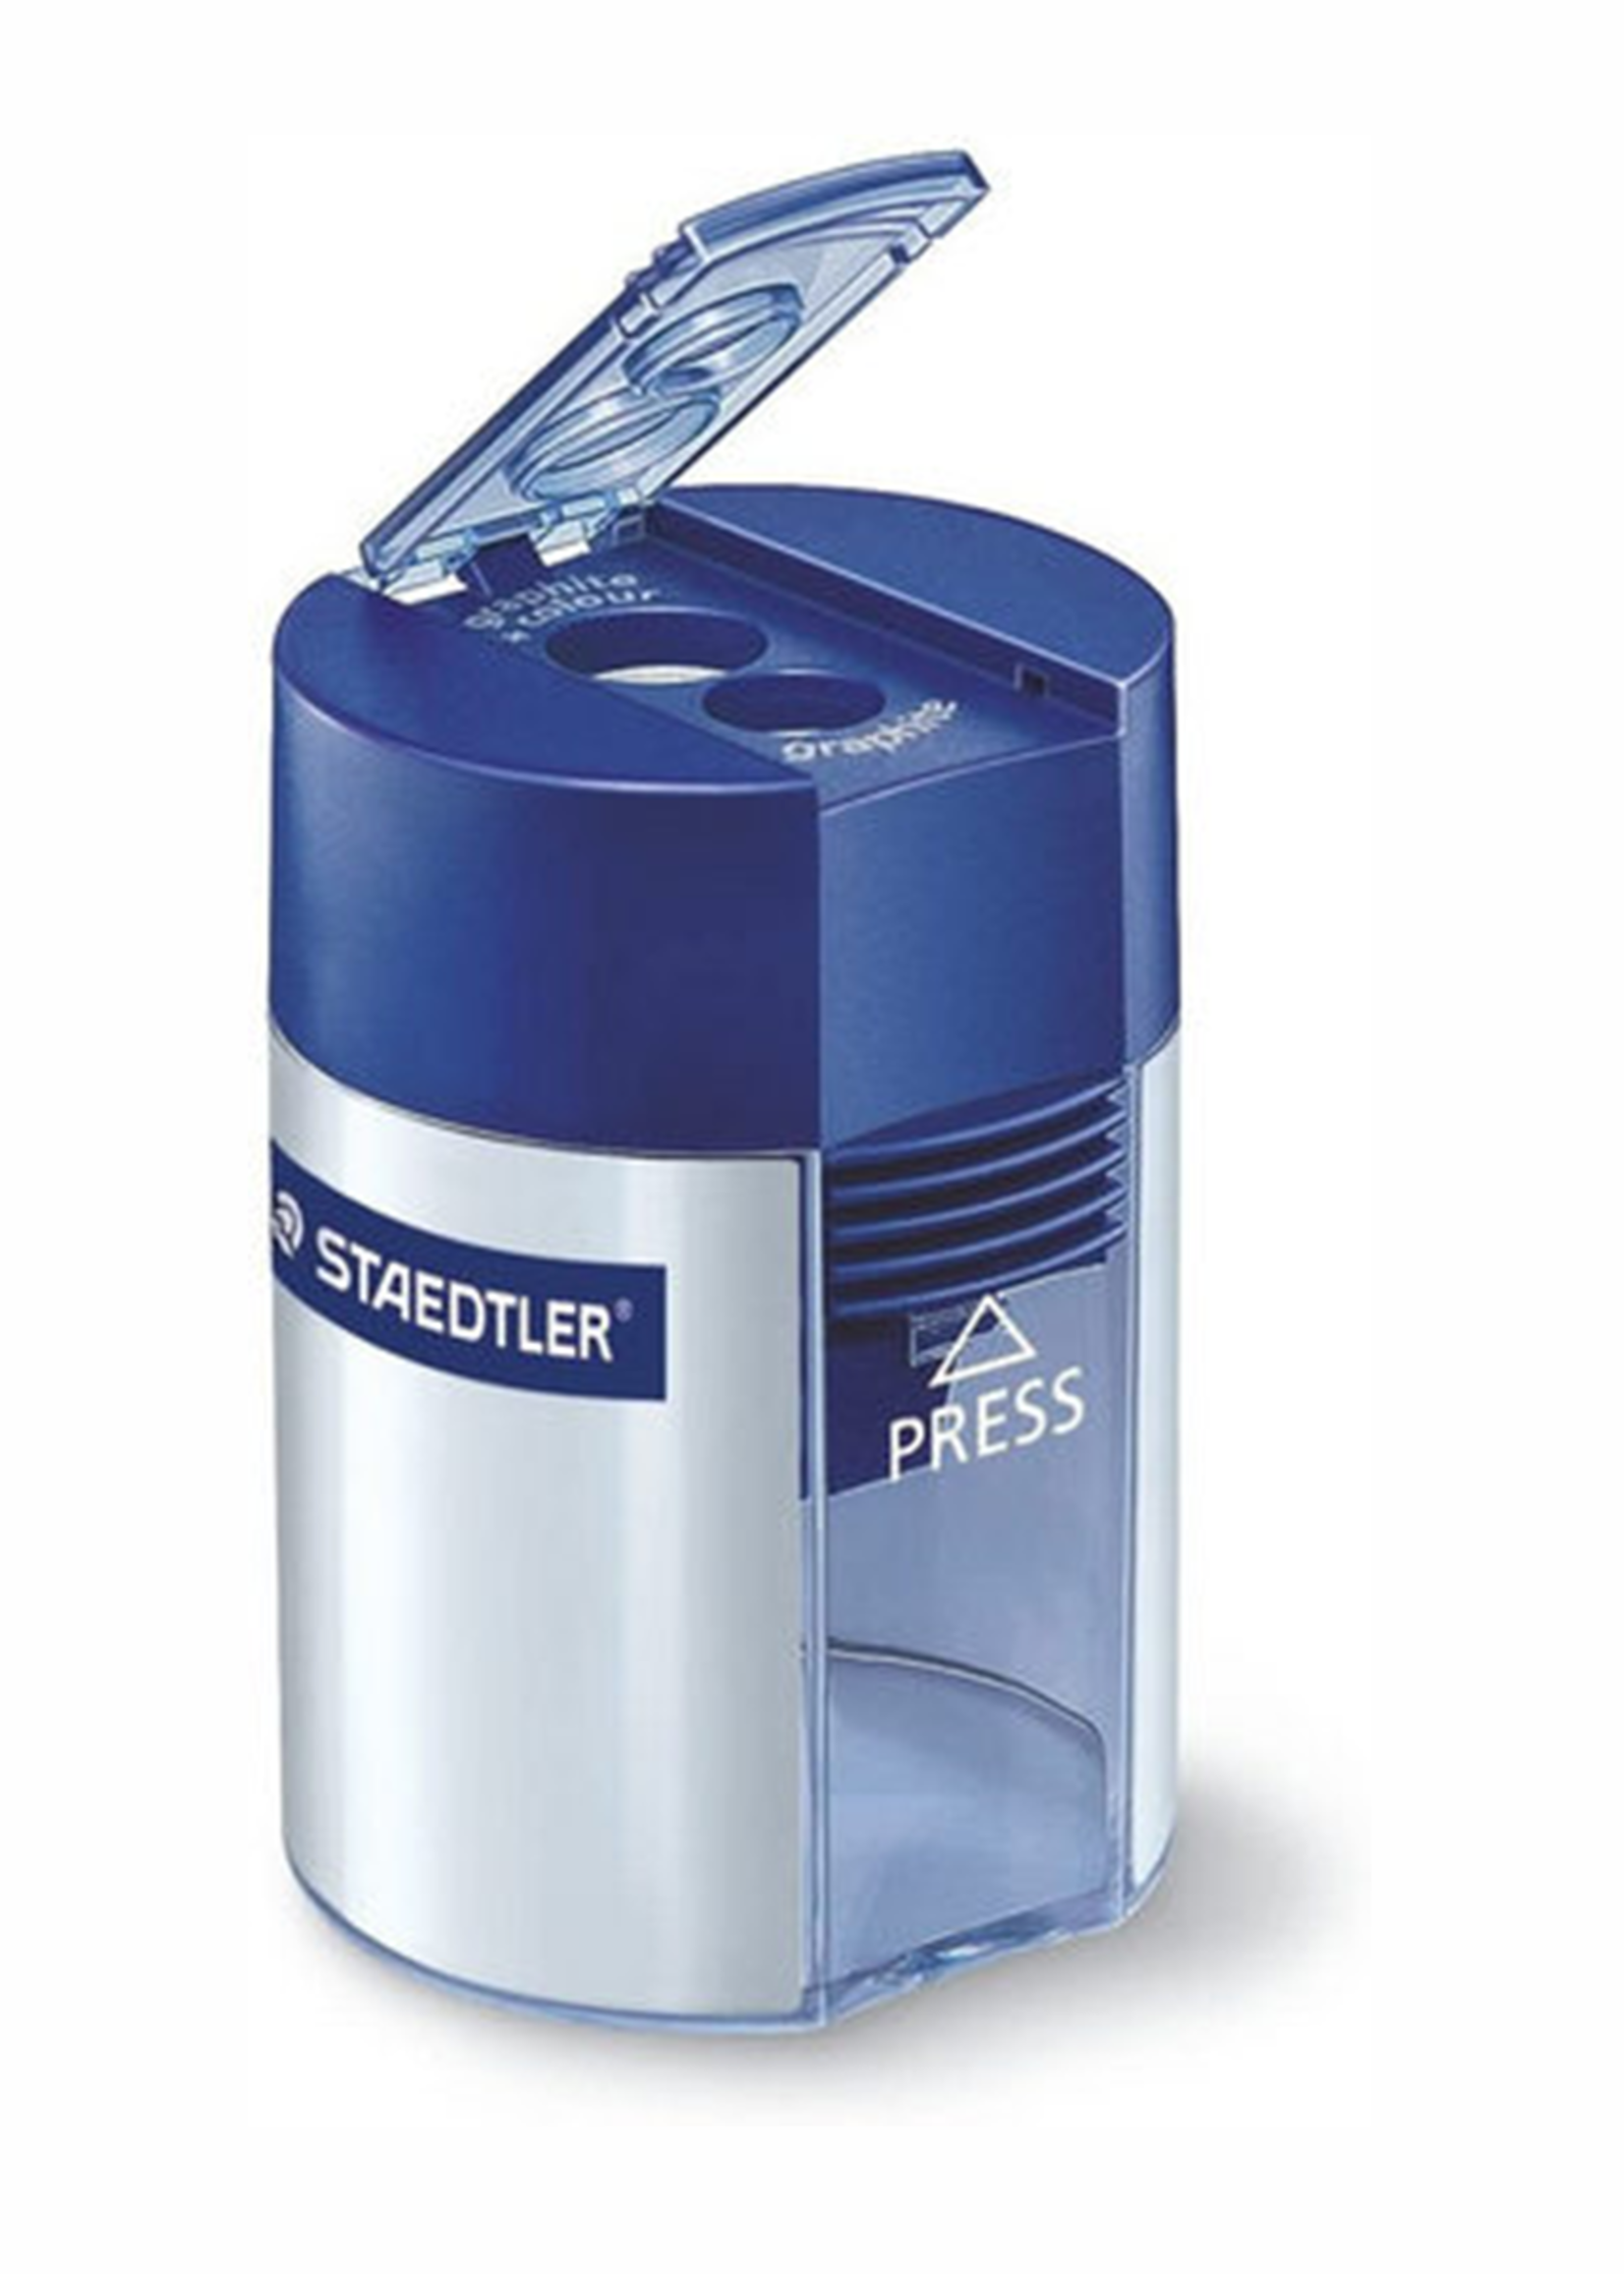 STAEDTLER-MARS LIMITED ST- DOUBLE HOLE CAN SHARPENER